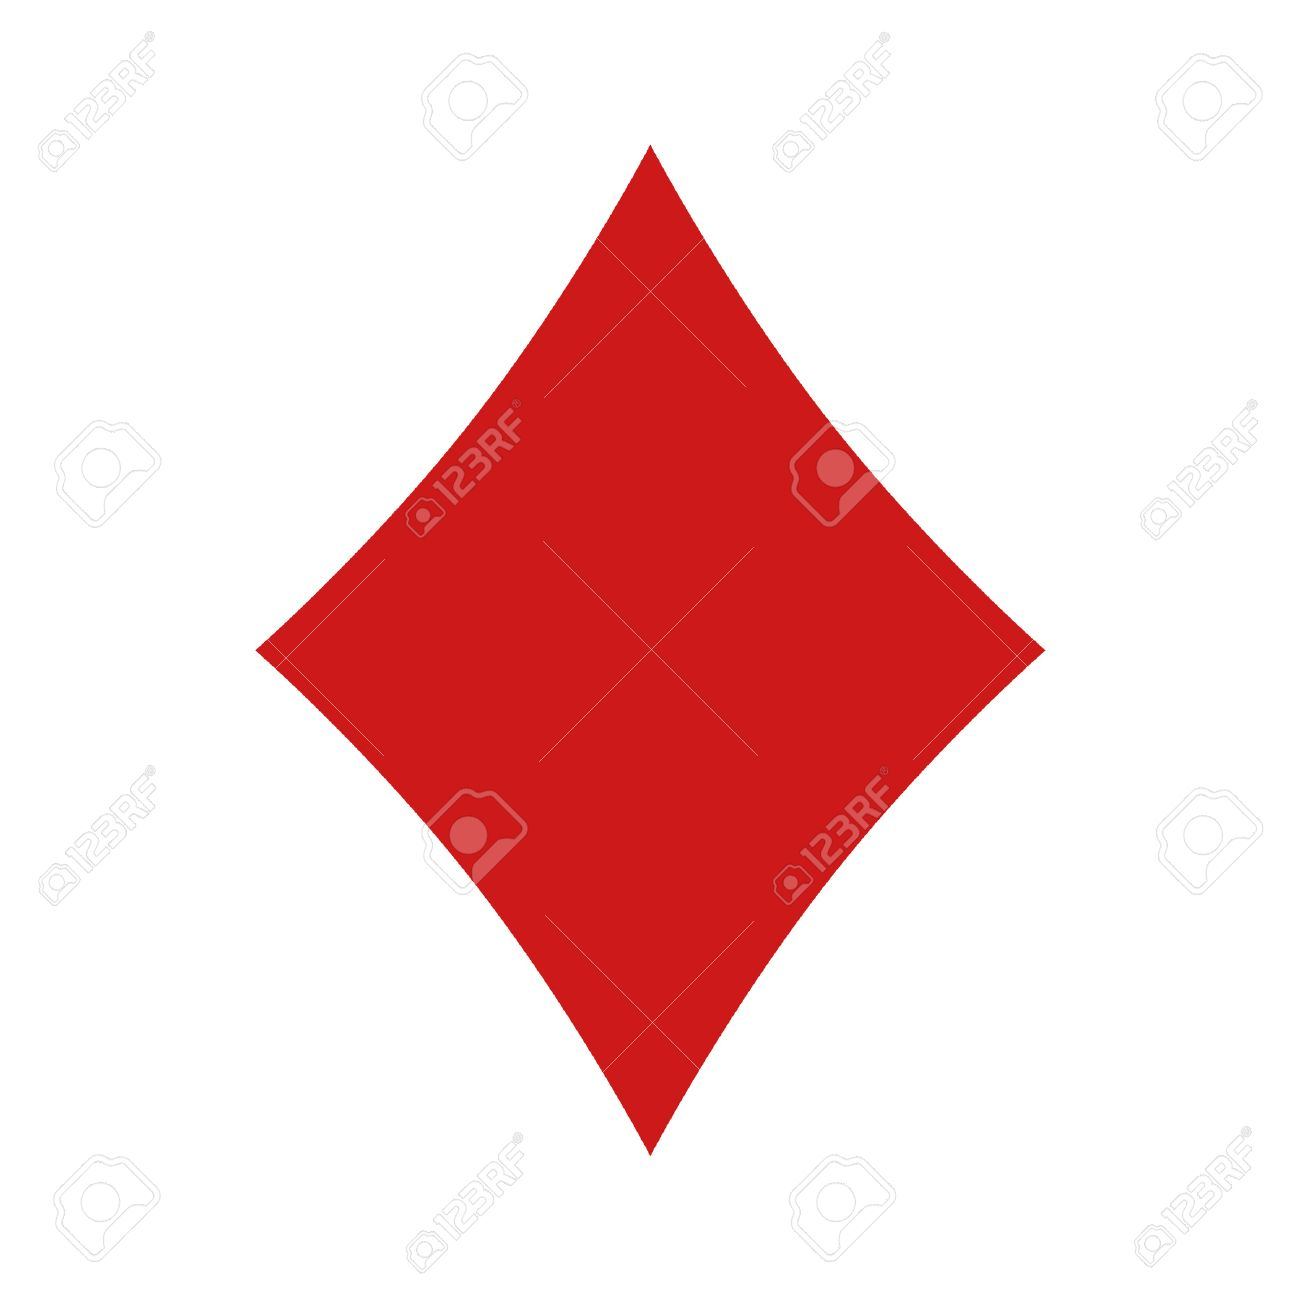 playing diamond cards clipart card shape images